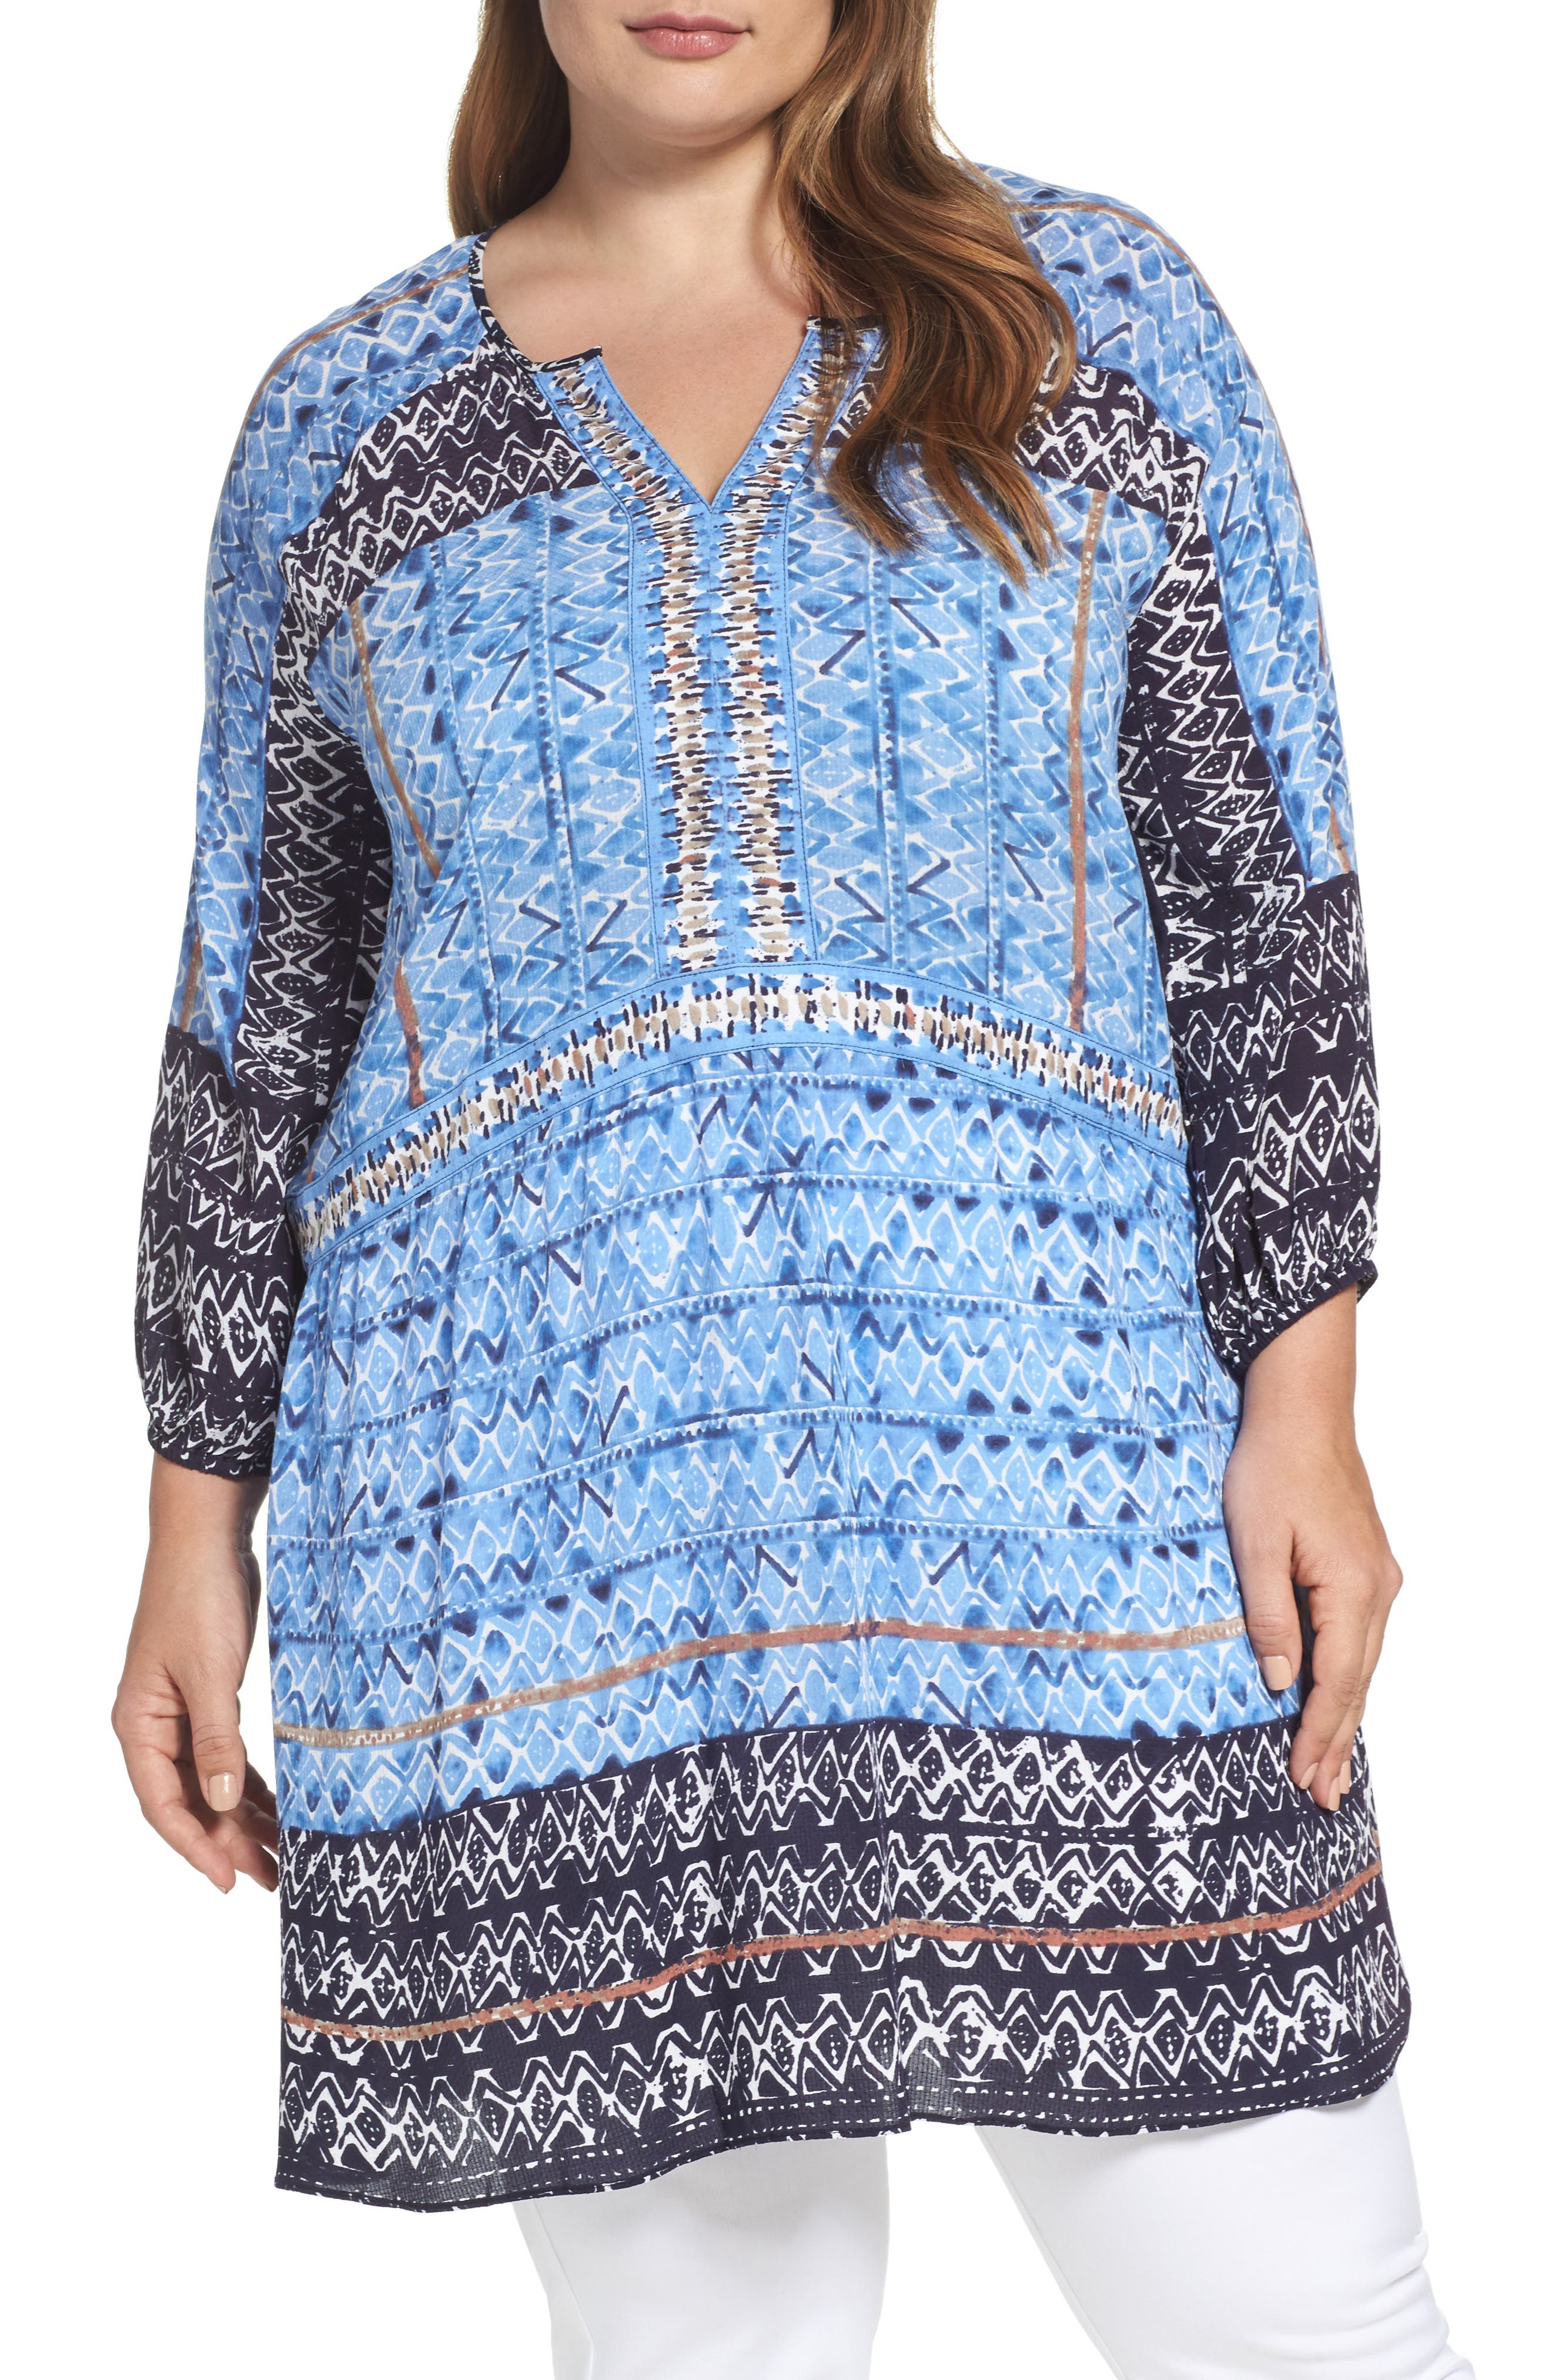 Sunny Days Tunic Top,                         Main,                         color, MULTI